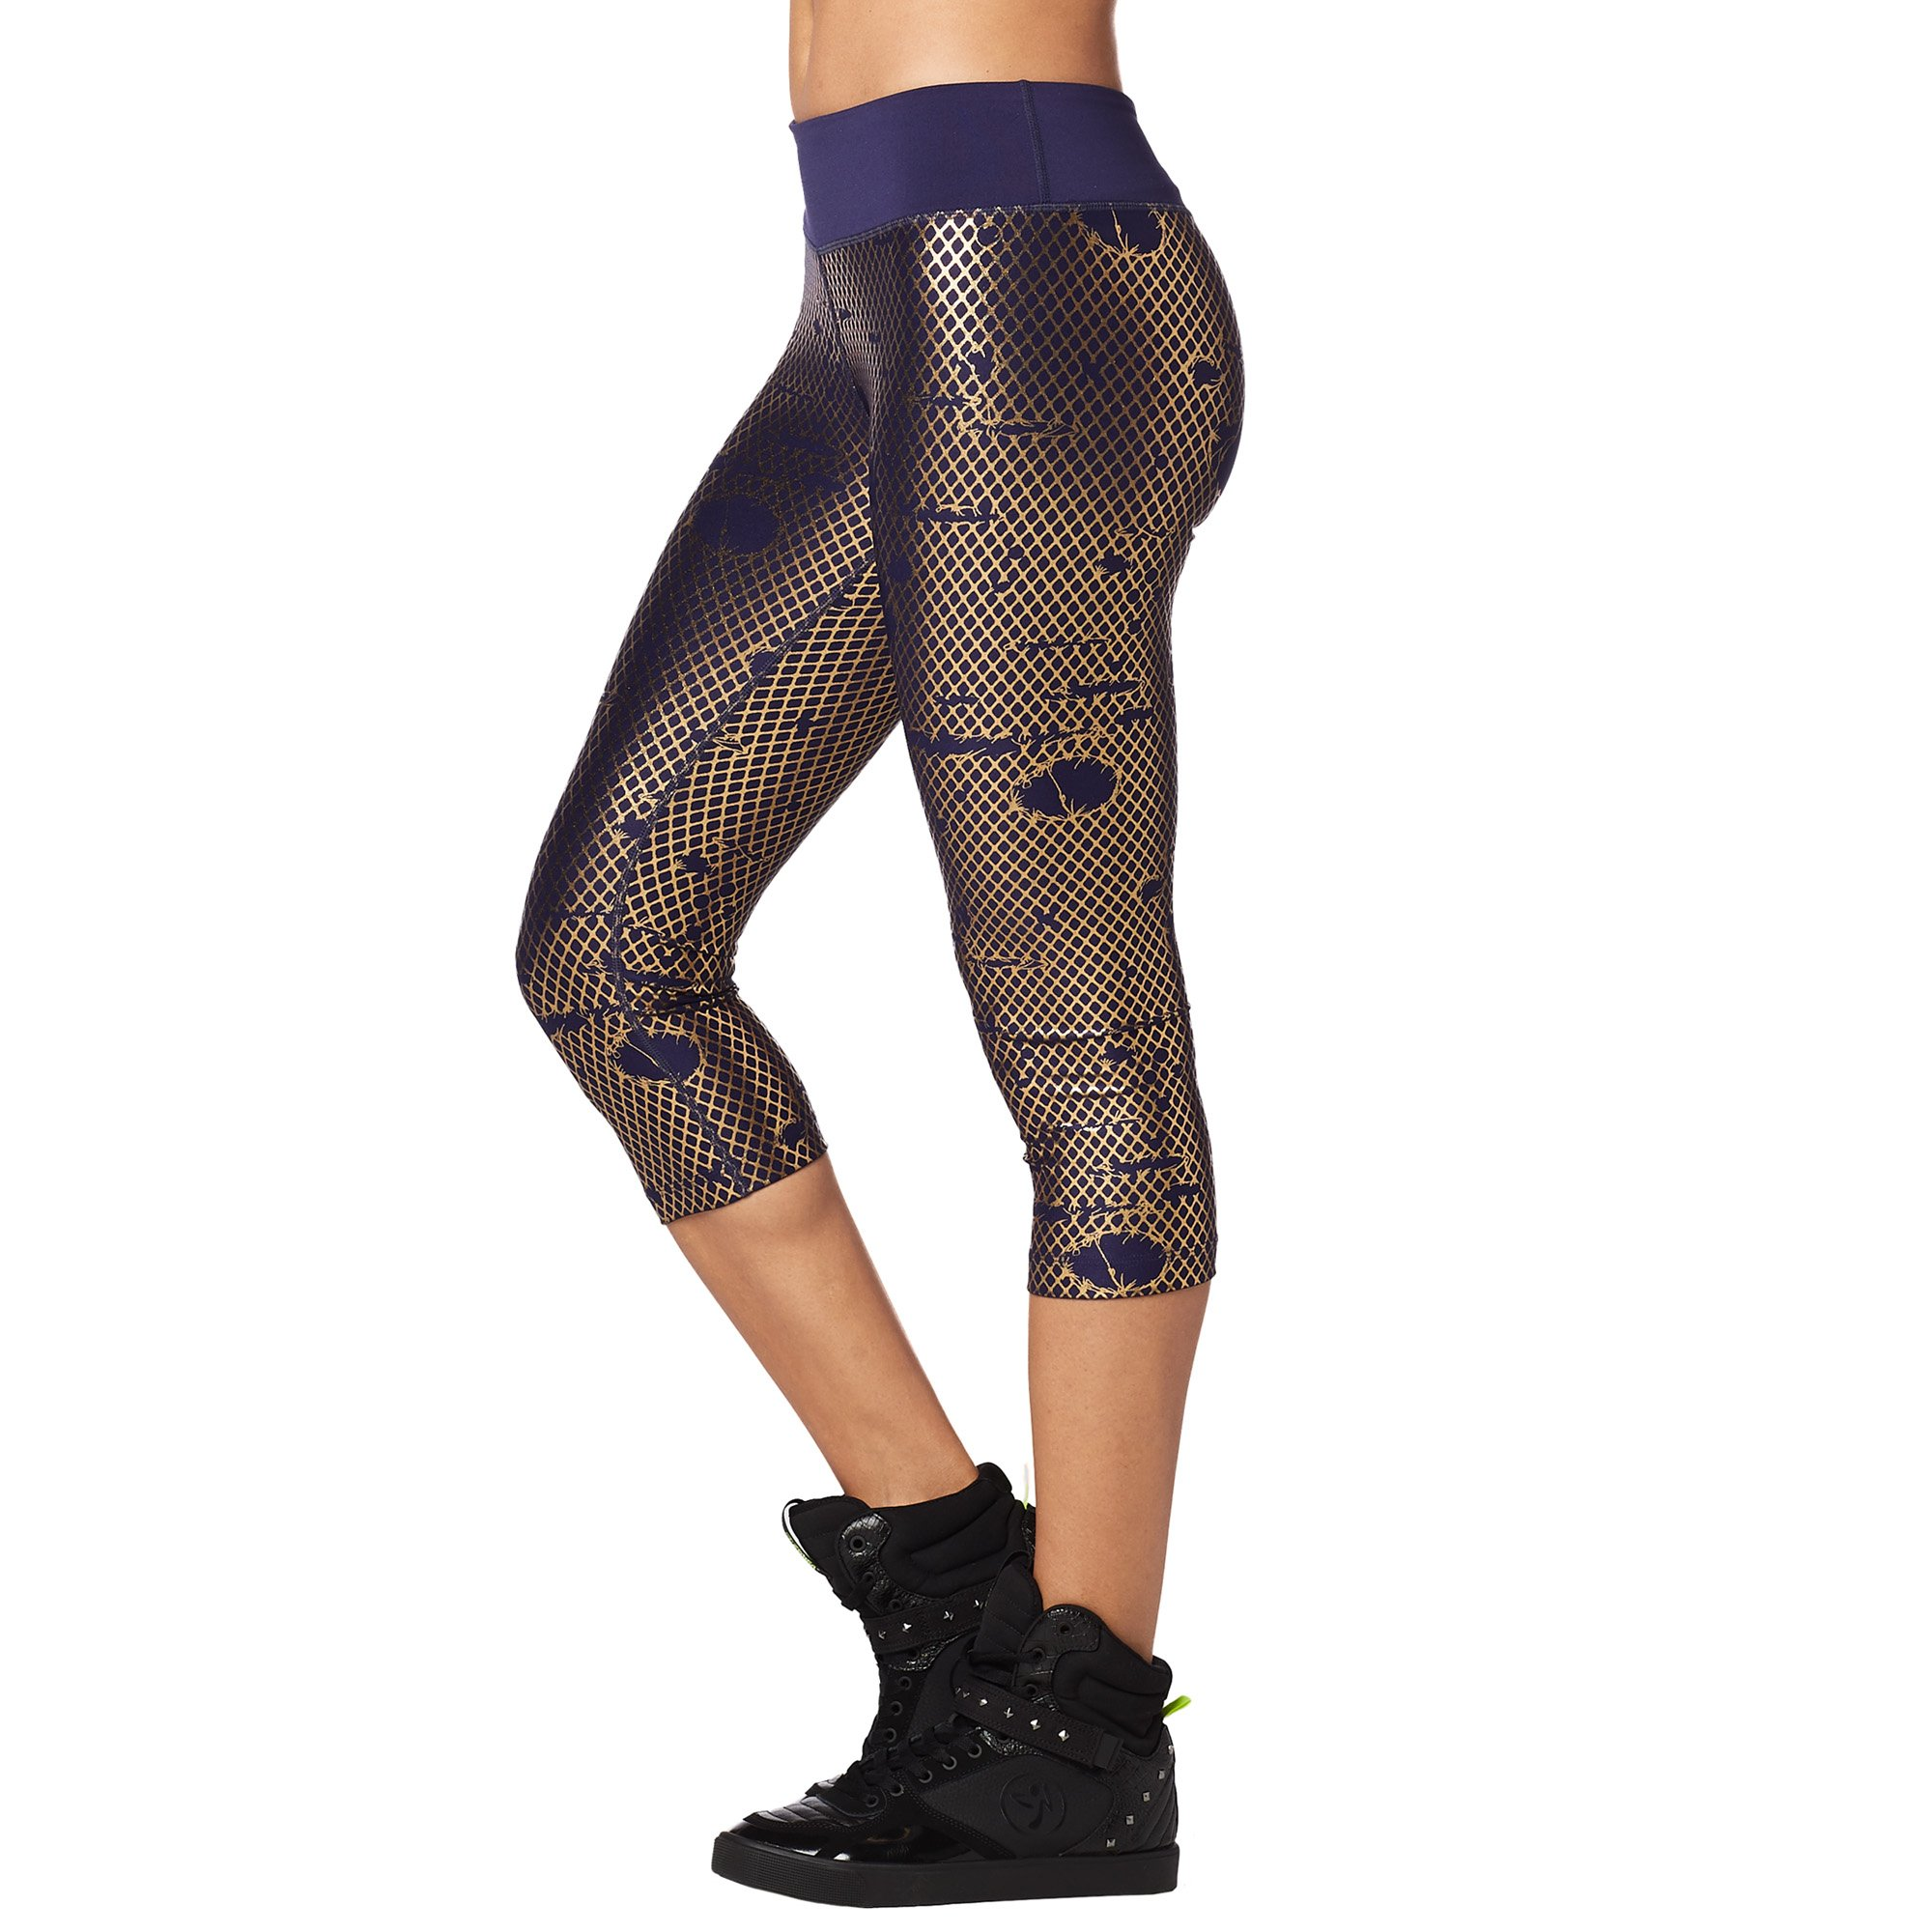 Zumba Metallic Print Capri Leggings Fitness Compression Dance Workout Leggings for Women by Zumba